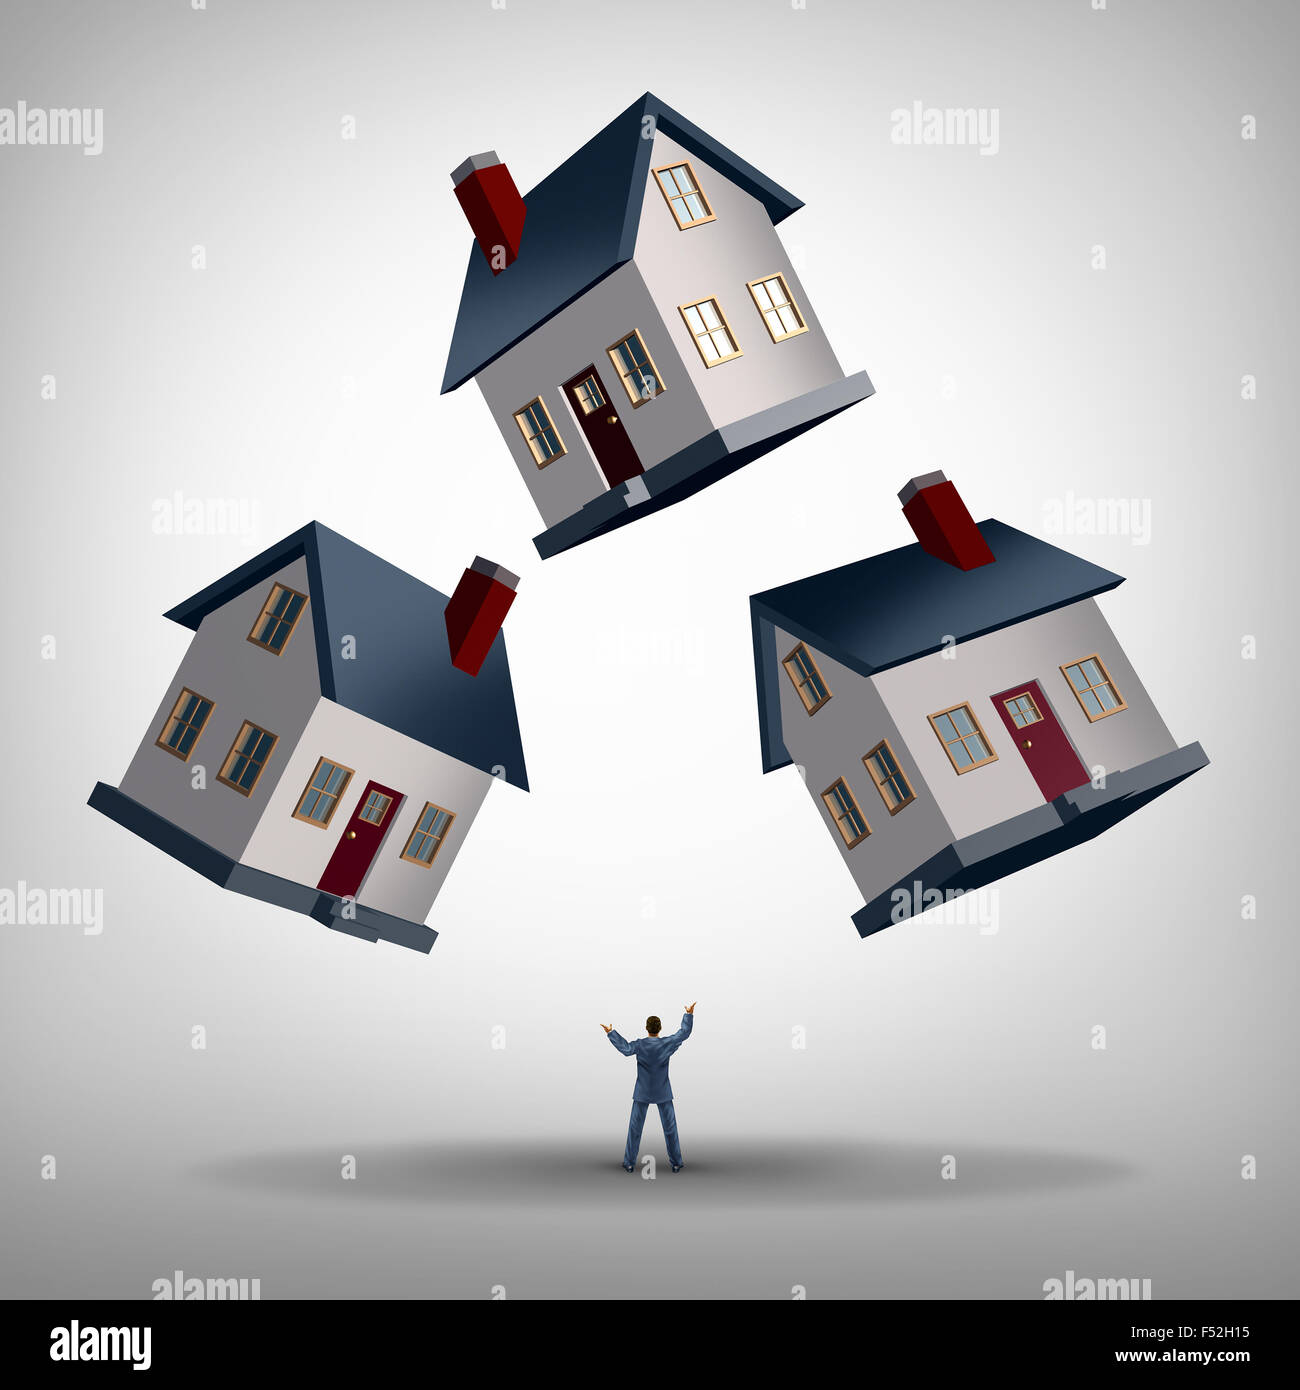 Real estate manager and house flipping and management concept as a person juggling three homes as a residence manager - Stock Image